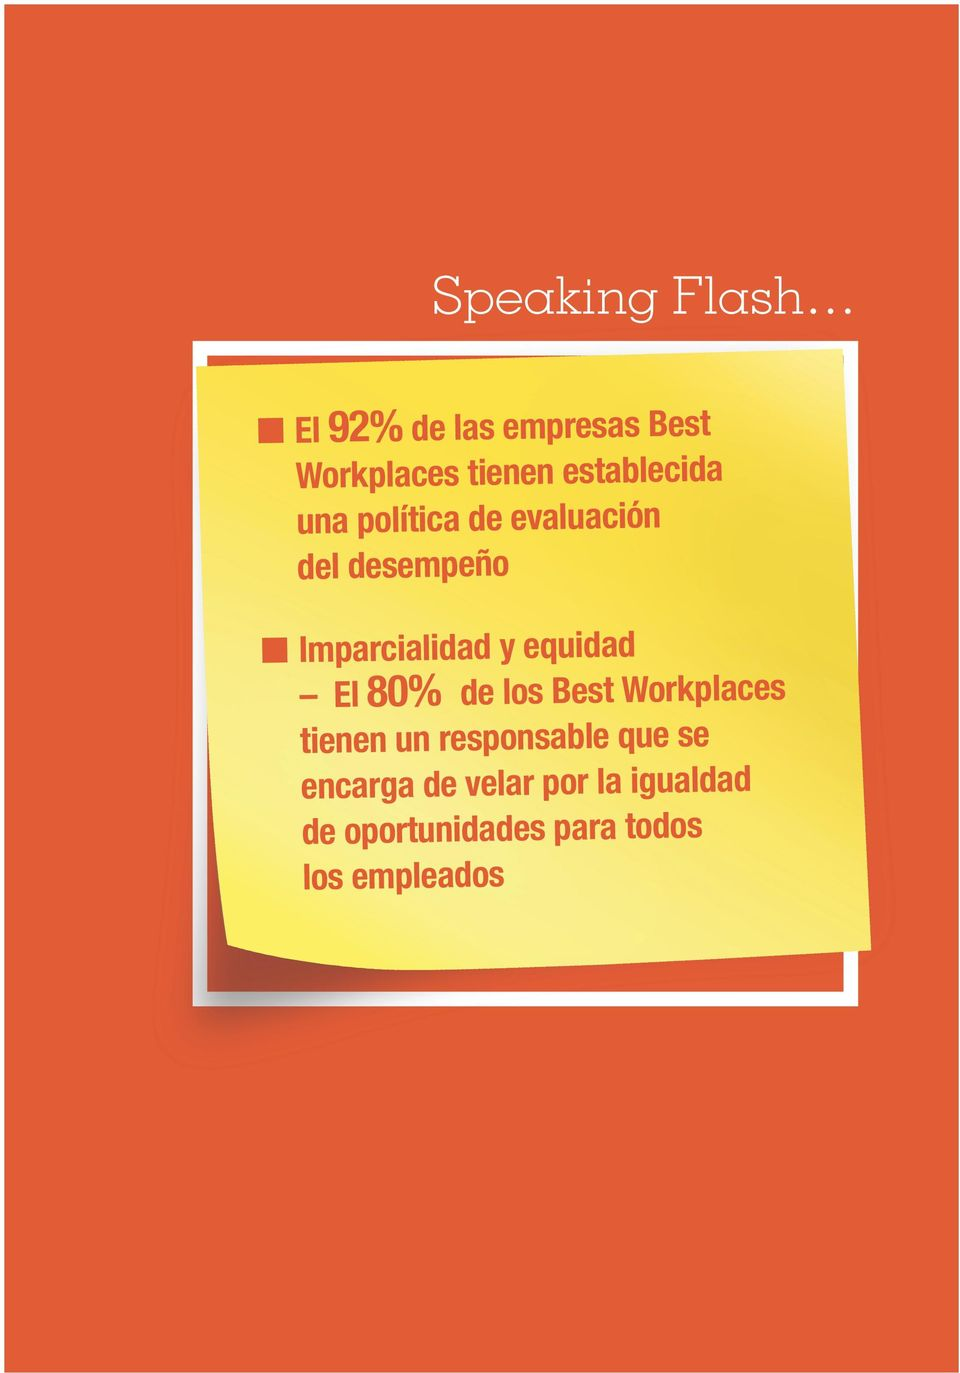 empleados GREAT PLACEGREAT TO WORK PLACE 2012 TO WORK 2014 79 SPEAKING n El 92% de